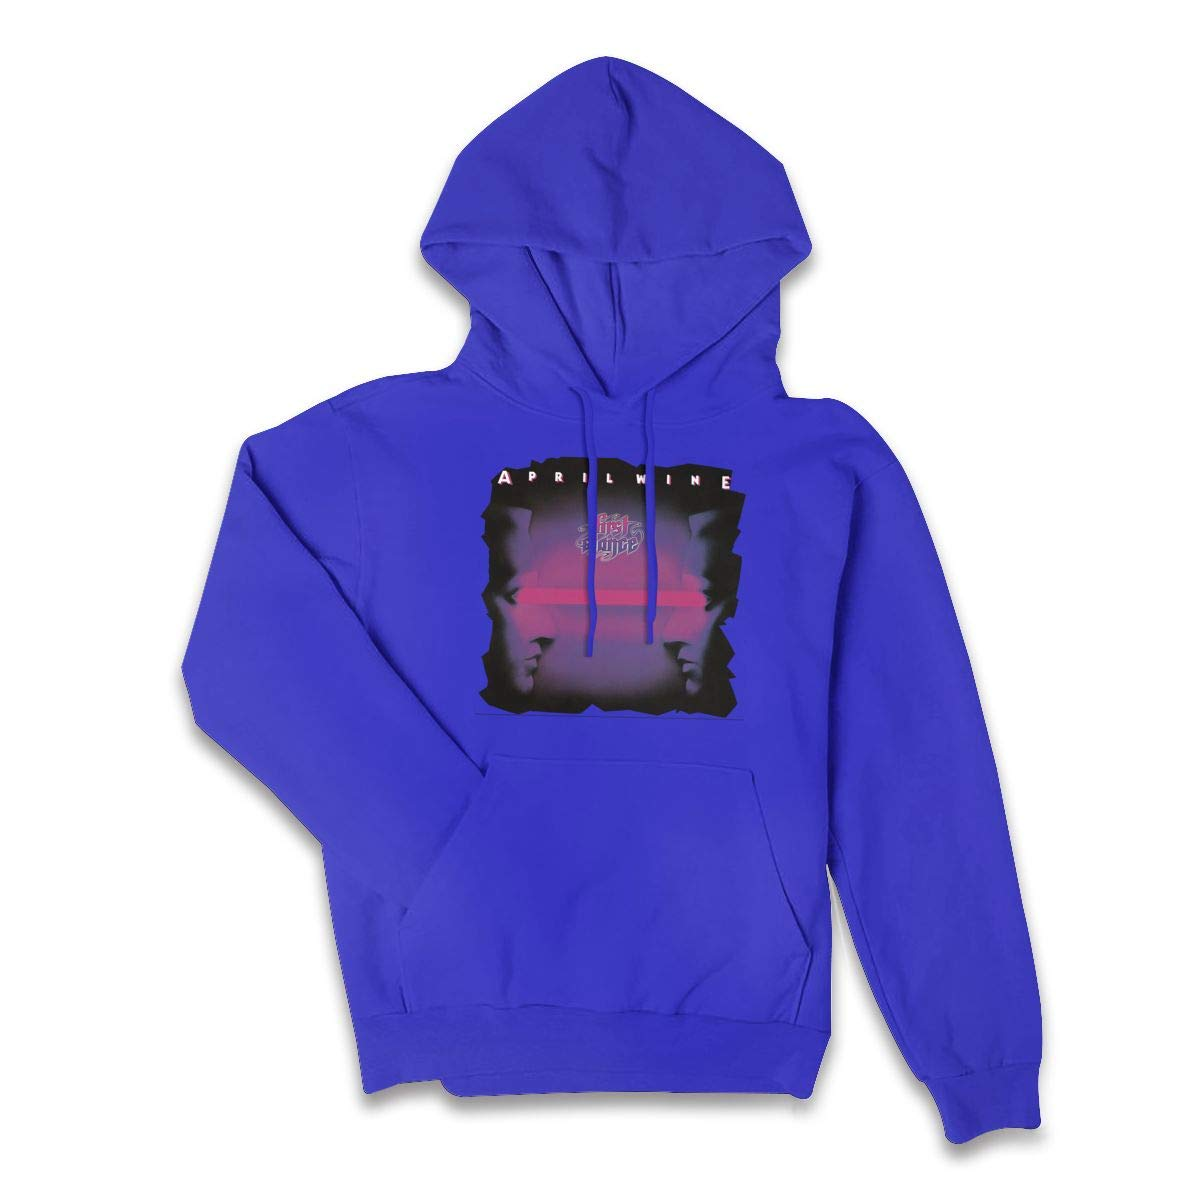 Erman S Color Name Athletic April Wine Band Pullover Hooded Shirts With Pocket S